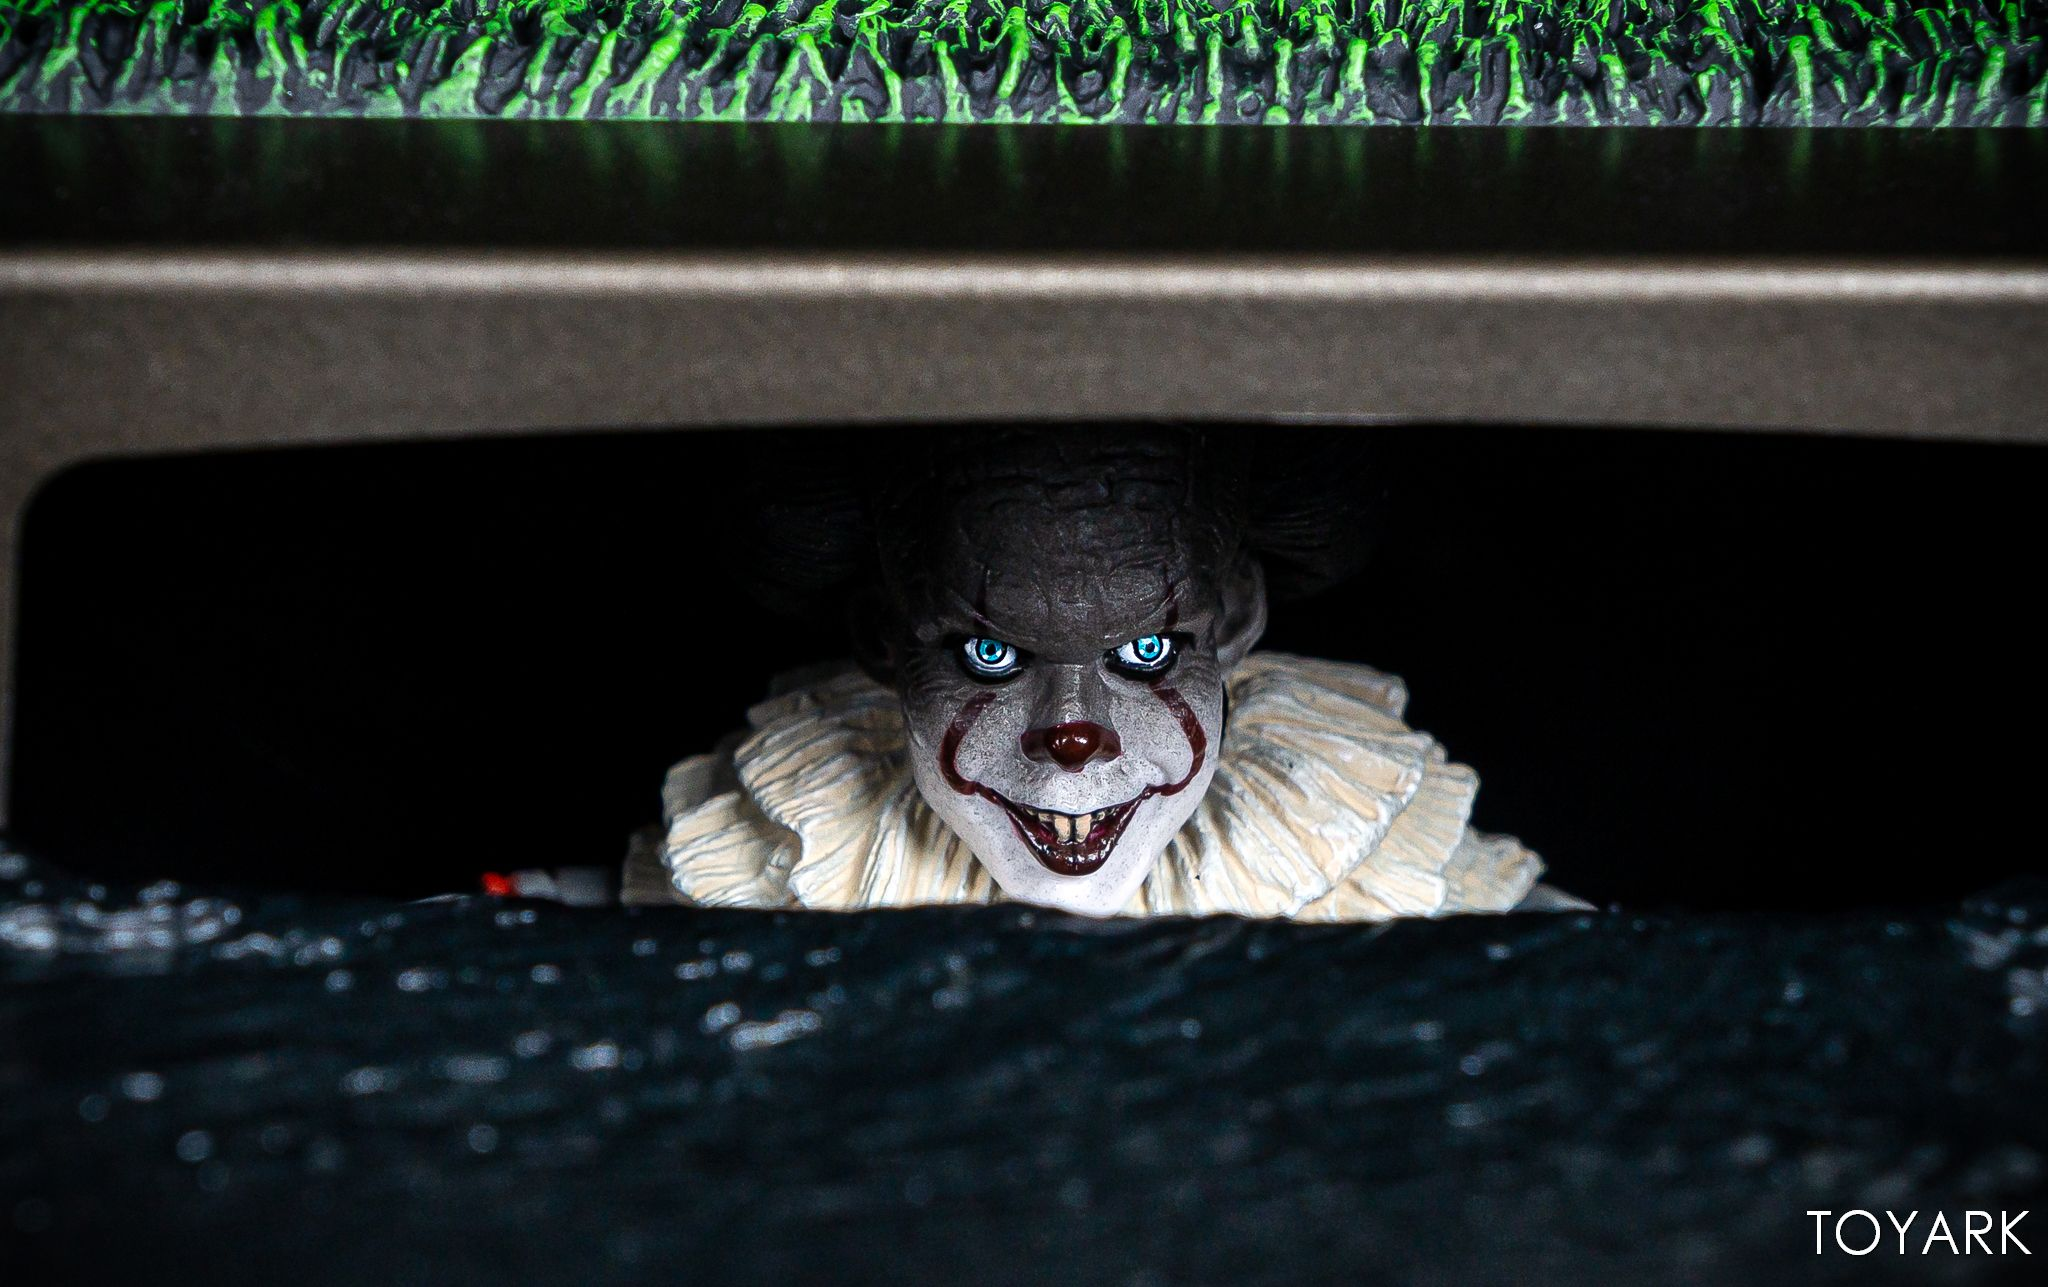 https://news.toyark.com/wp-content/uploads/sites/4/2019/05/NECA-Pennywise-Accessory-Set-013.jpg